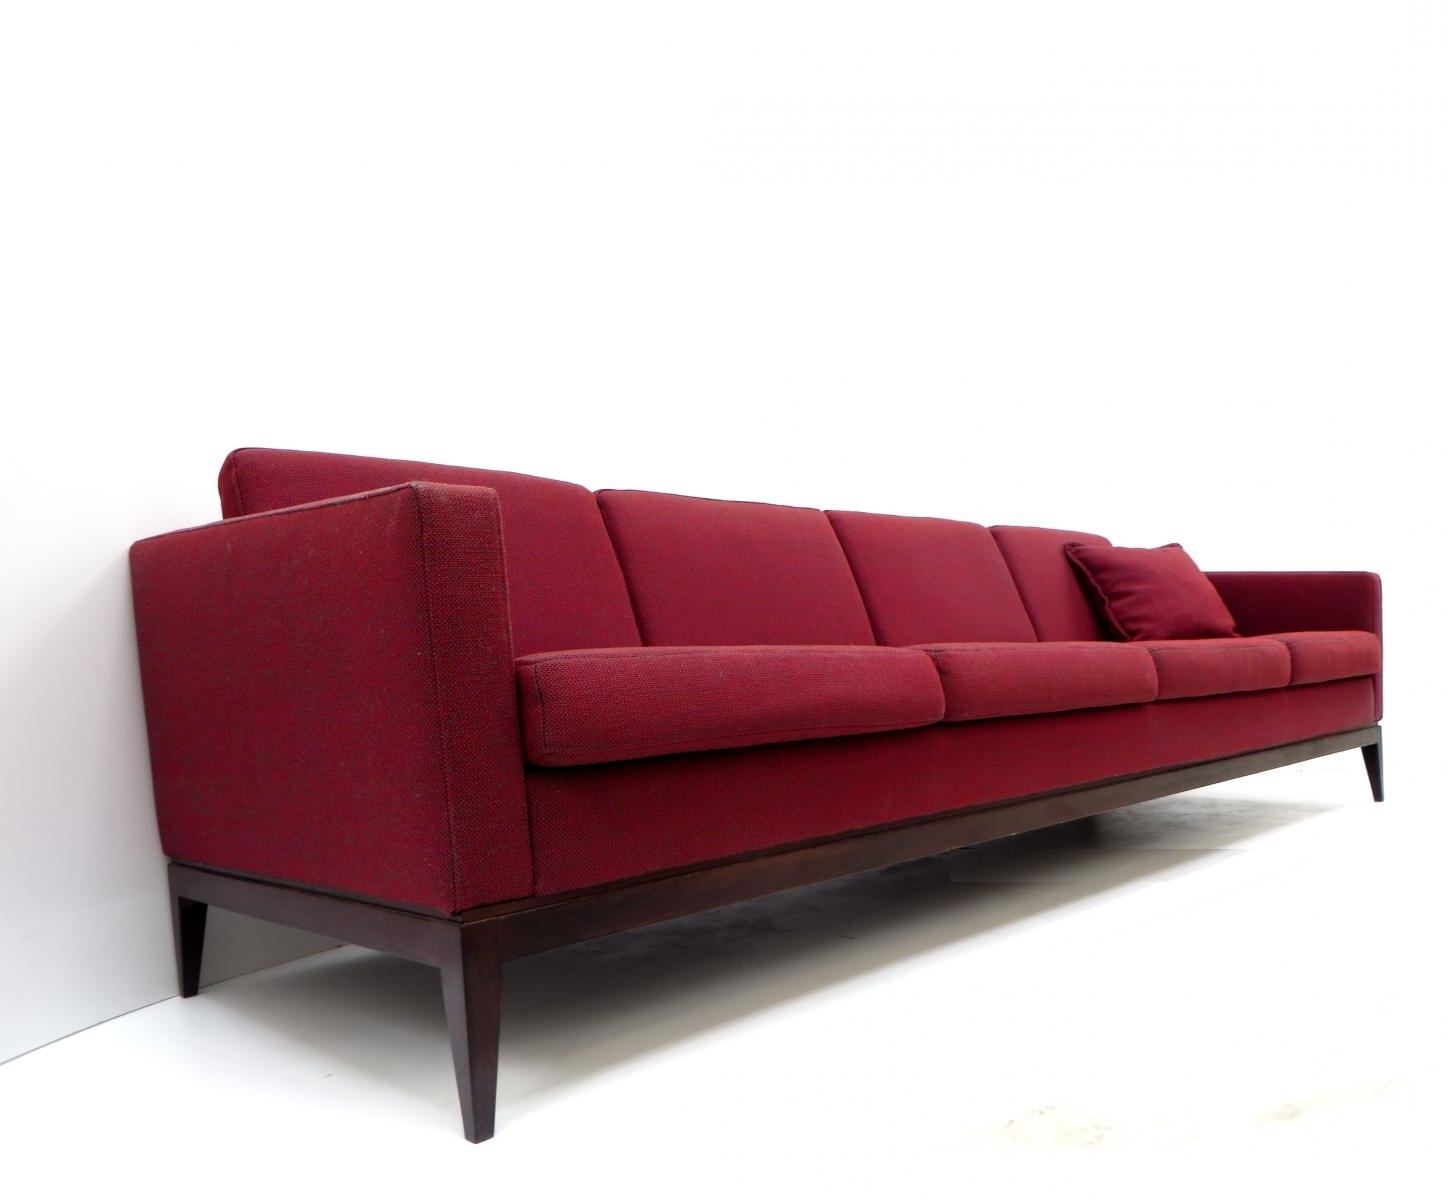 Four Seater Sofas Inside Best And Newest Large Vintage Burgundy Four Seater Sofa For Sale At Pamono (View 6 of 20)